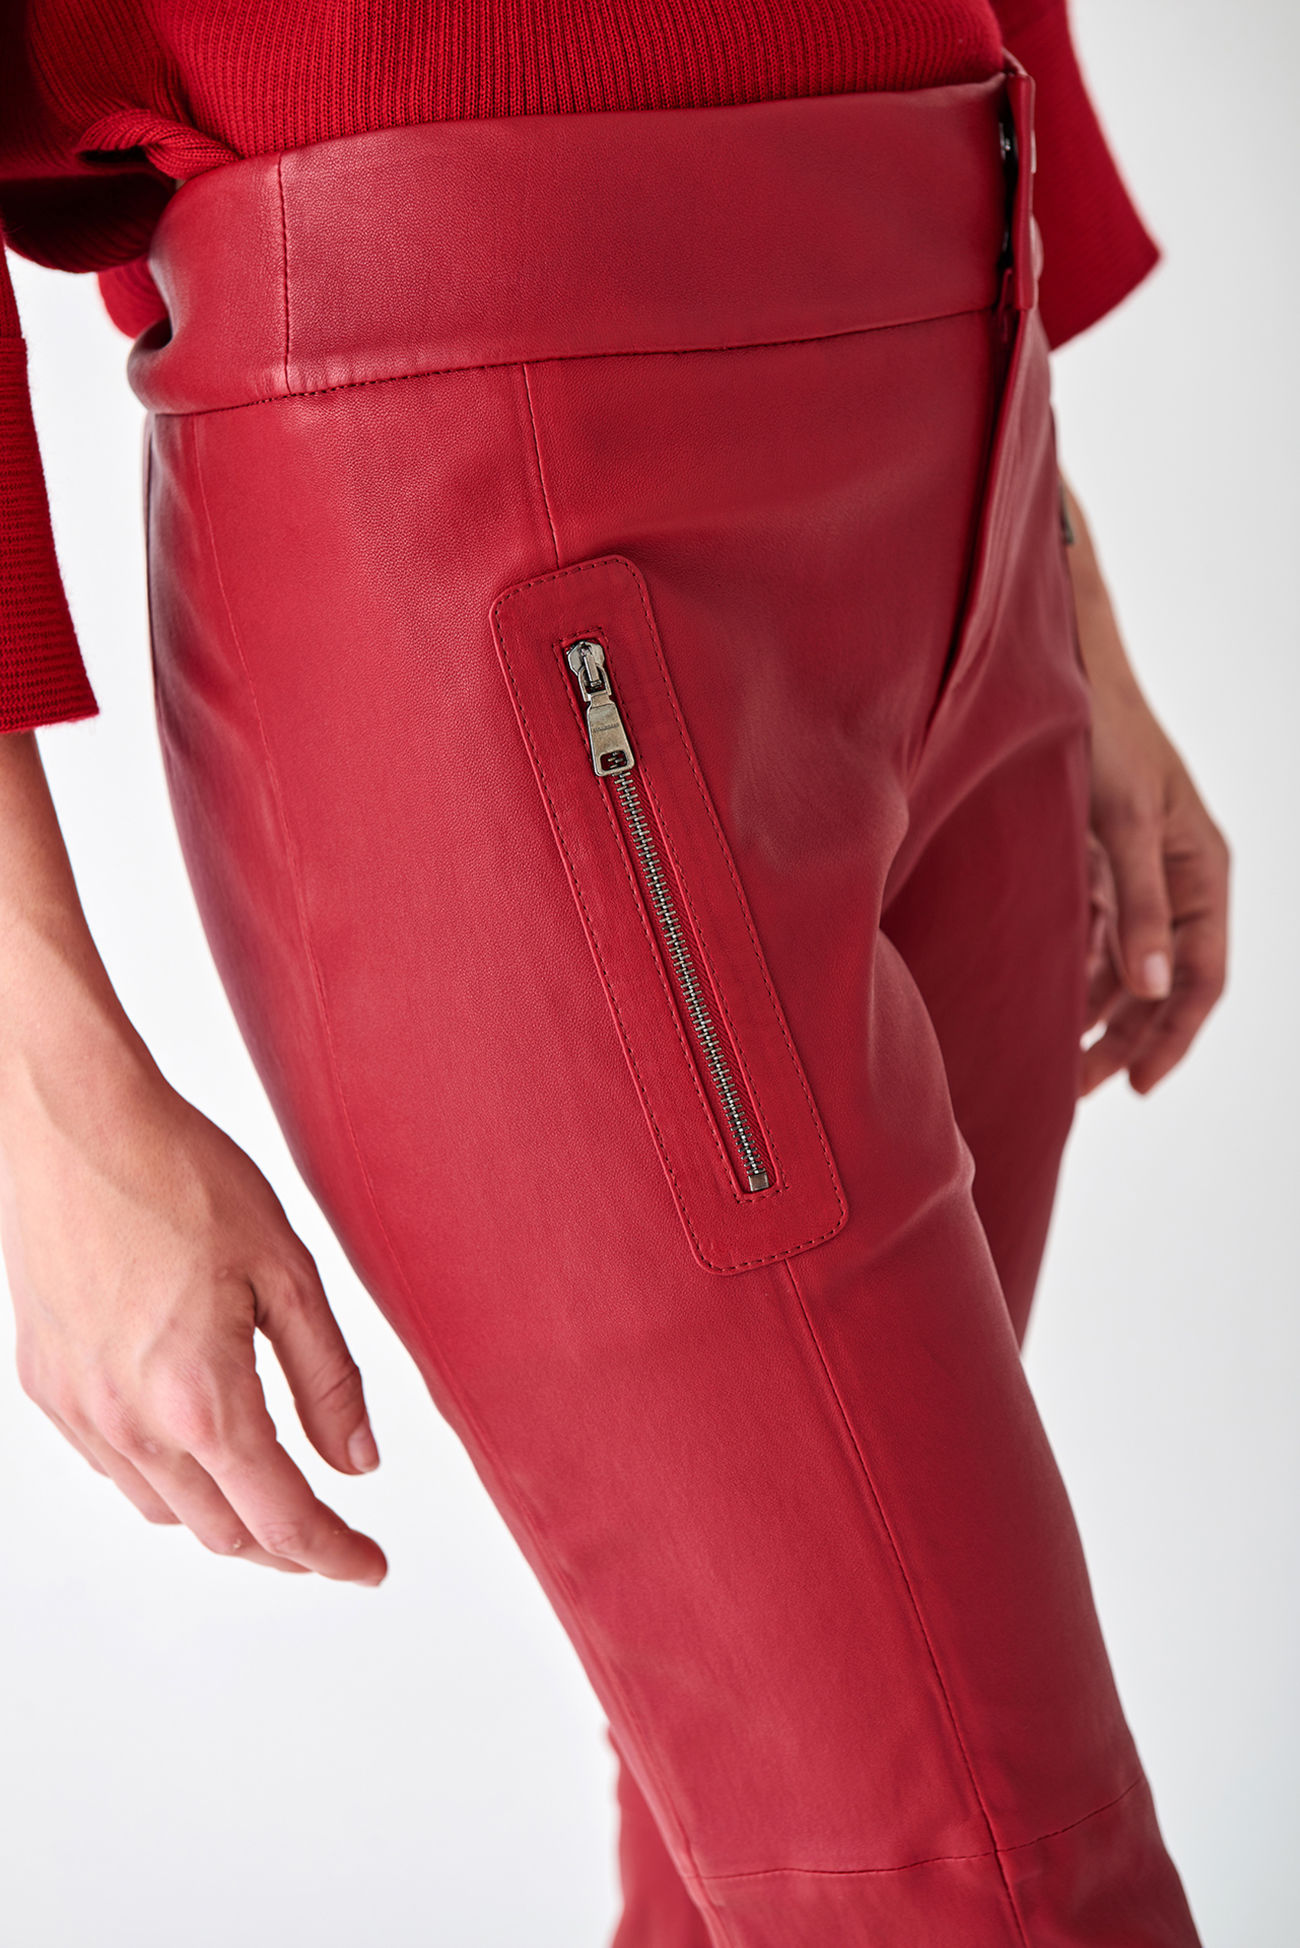 Classy trousers made of stretch nappa leather